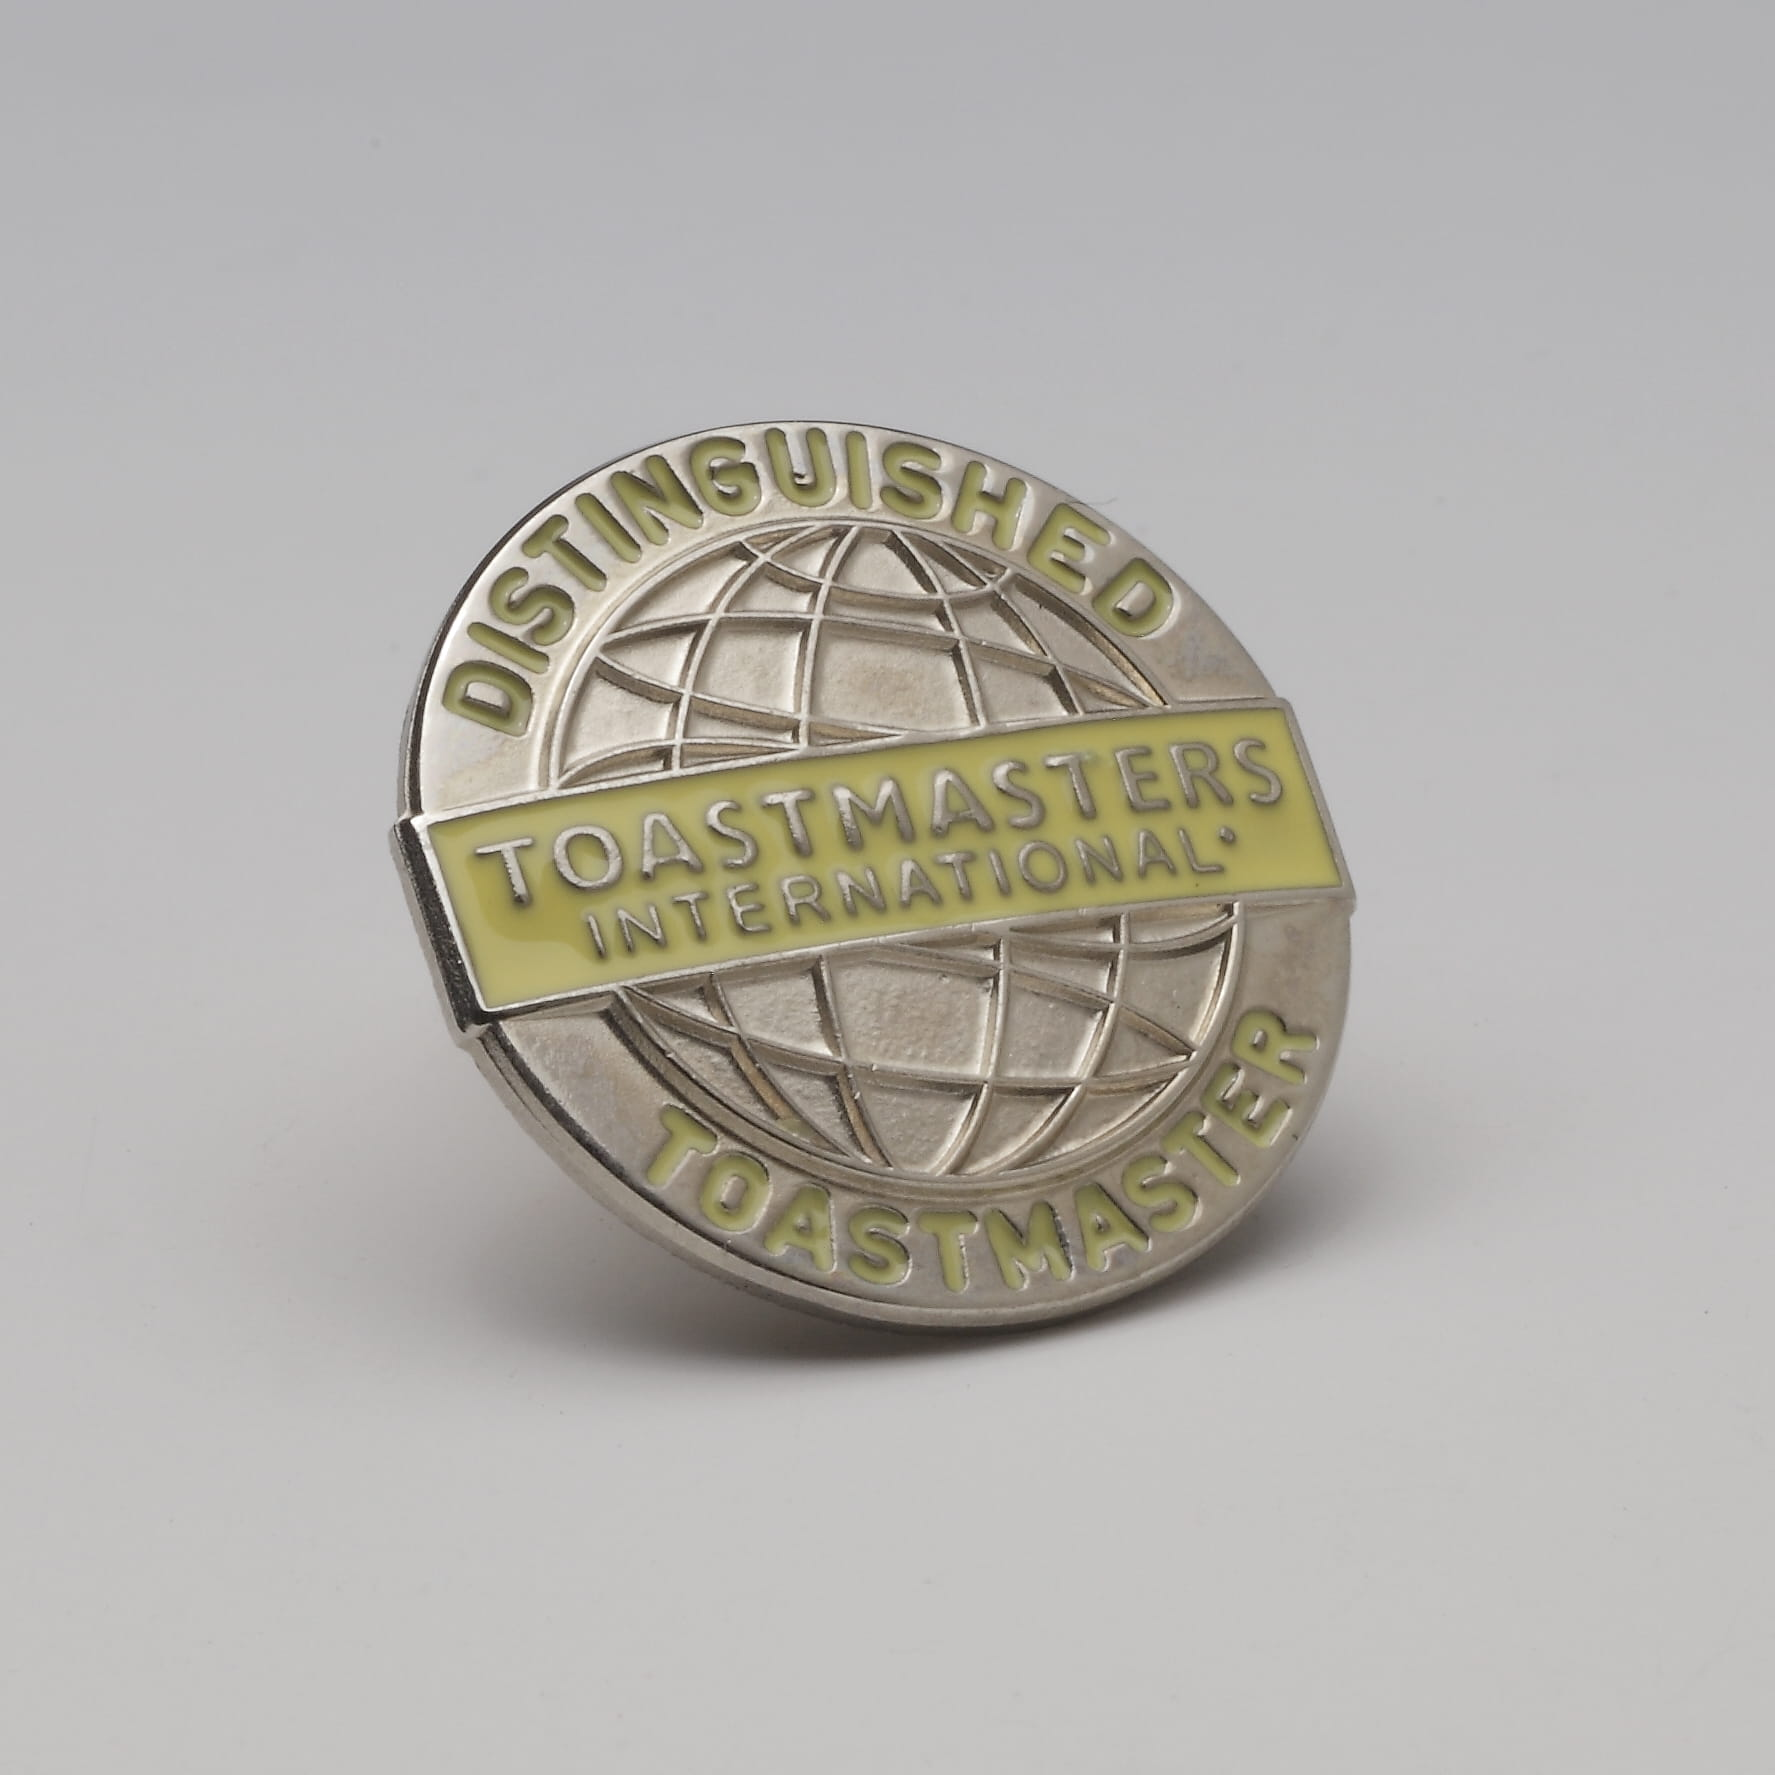 Distinguished Toastmaster pin